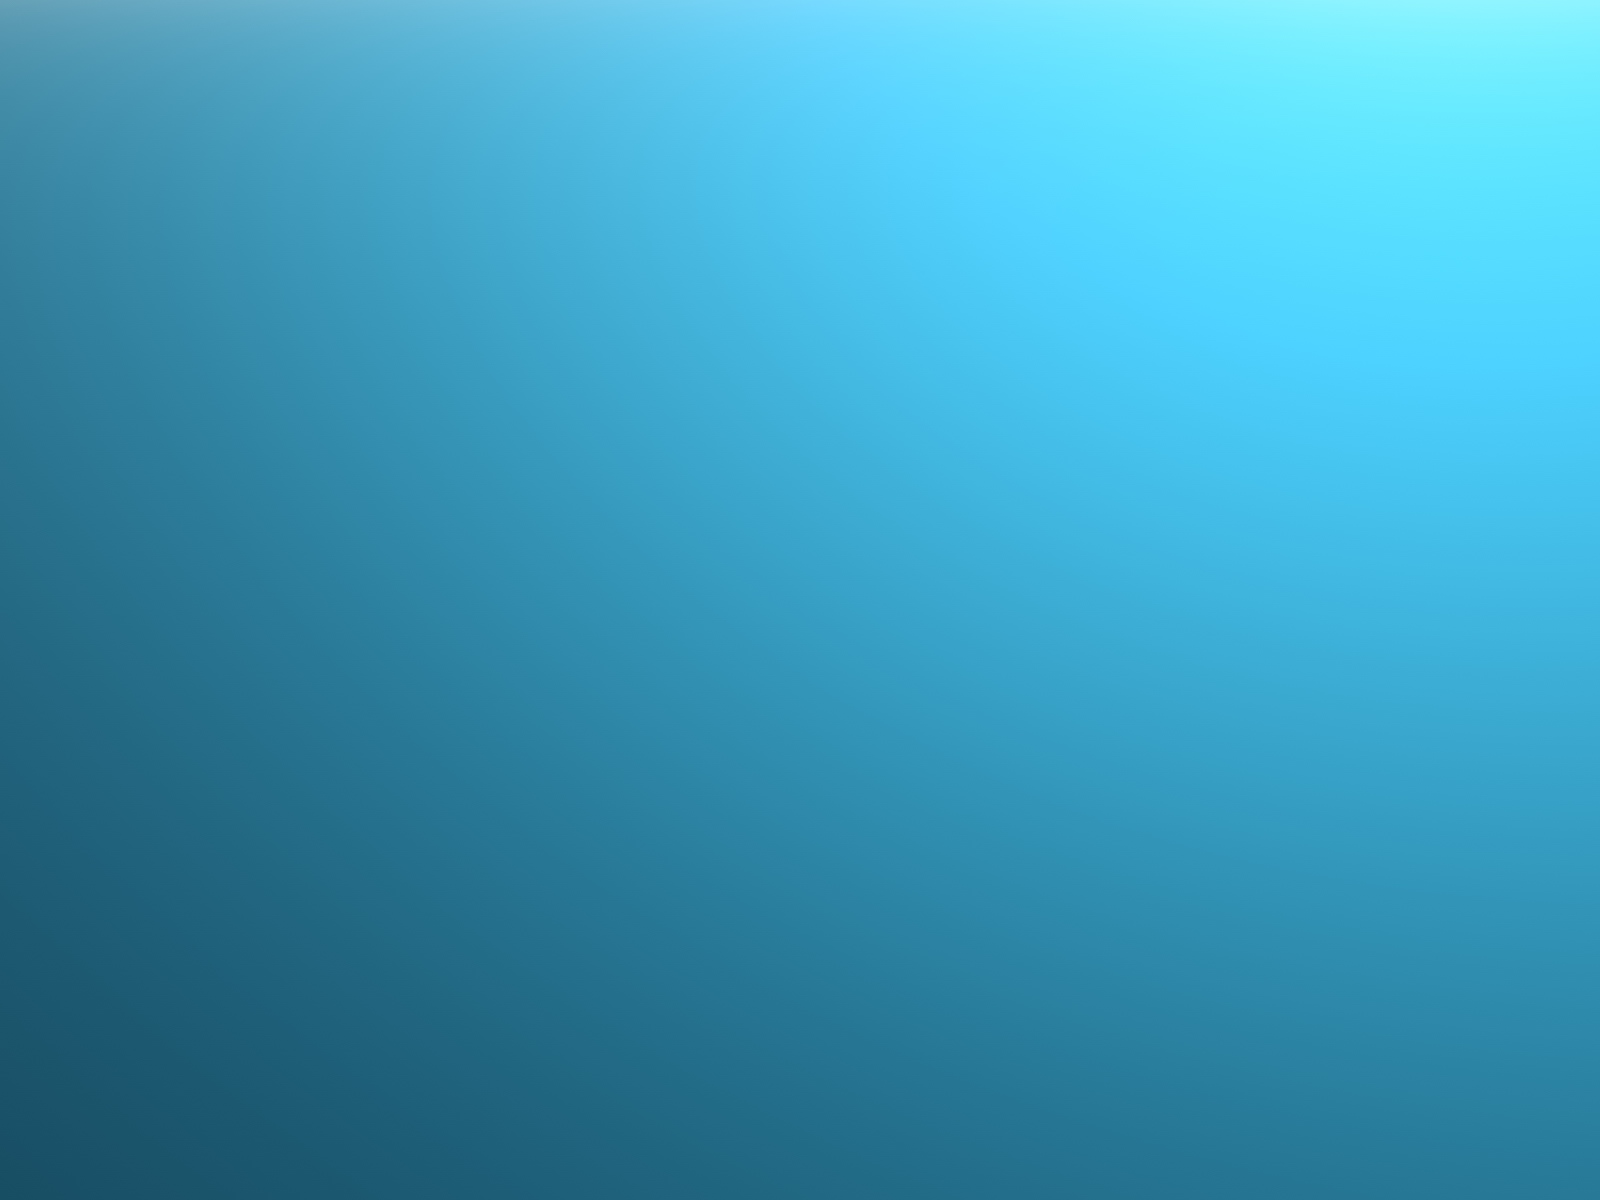 plain light blue backgrounds hd wallpaper background desktop